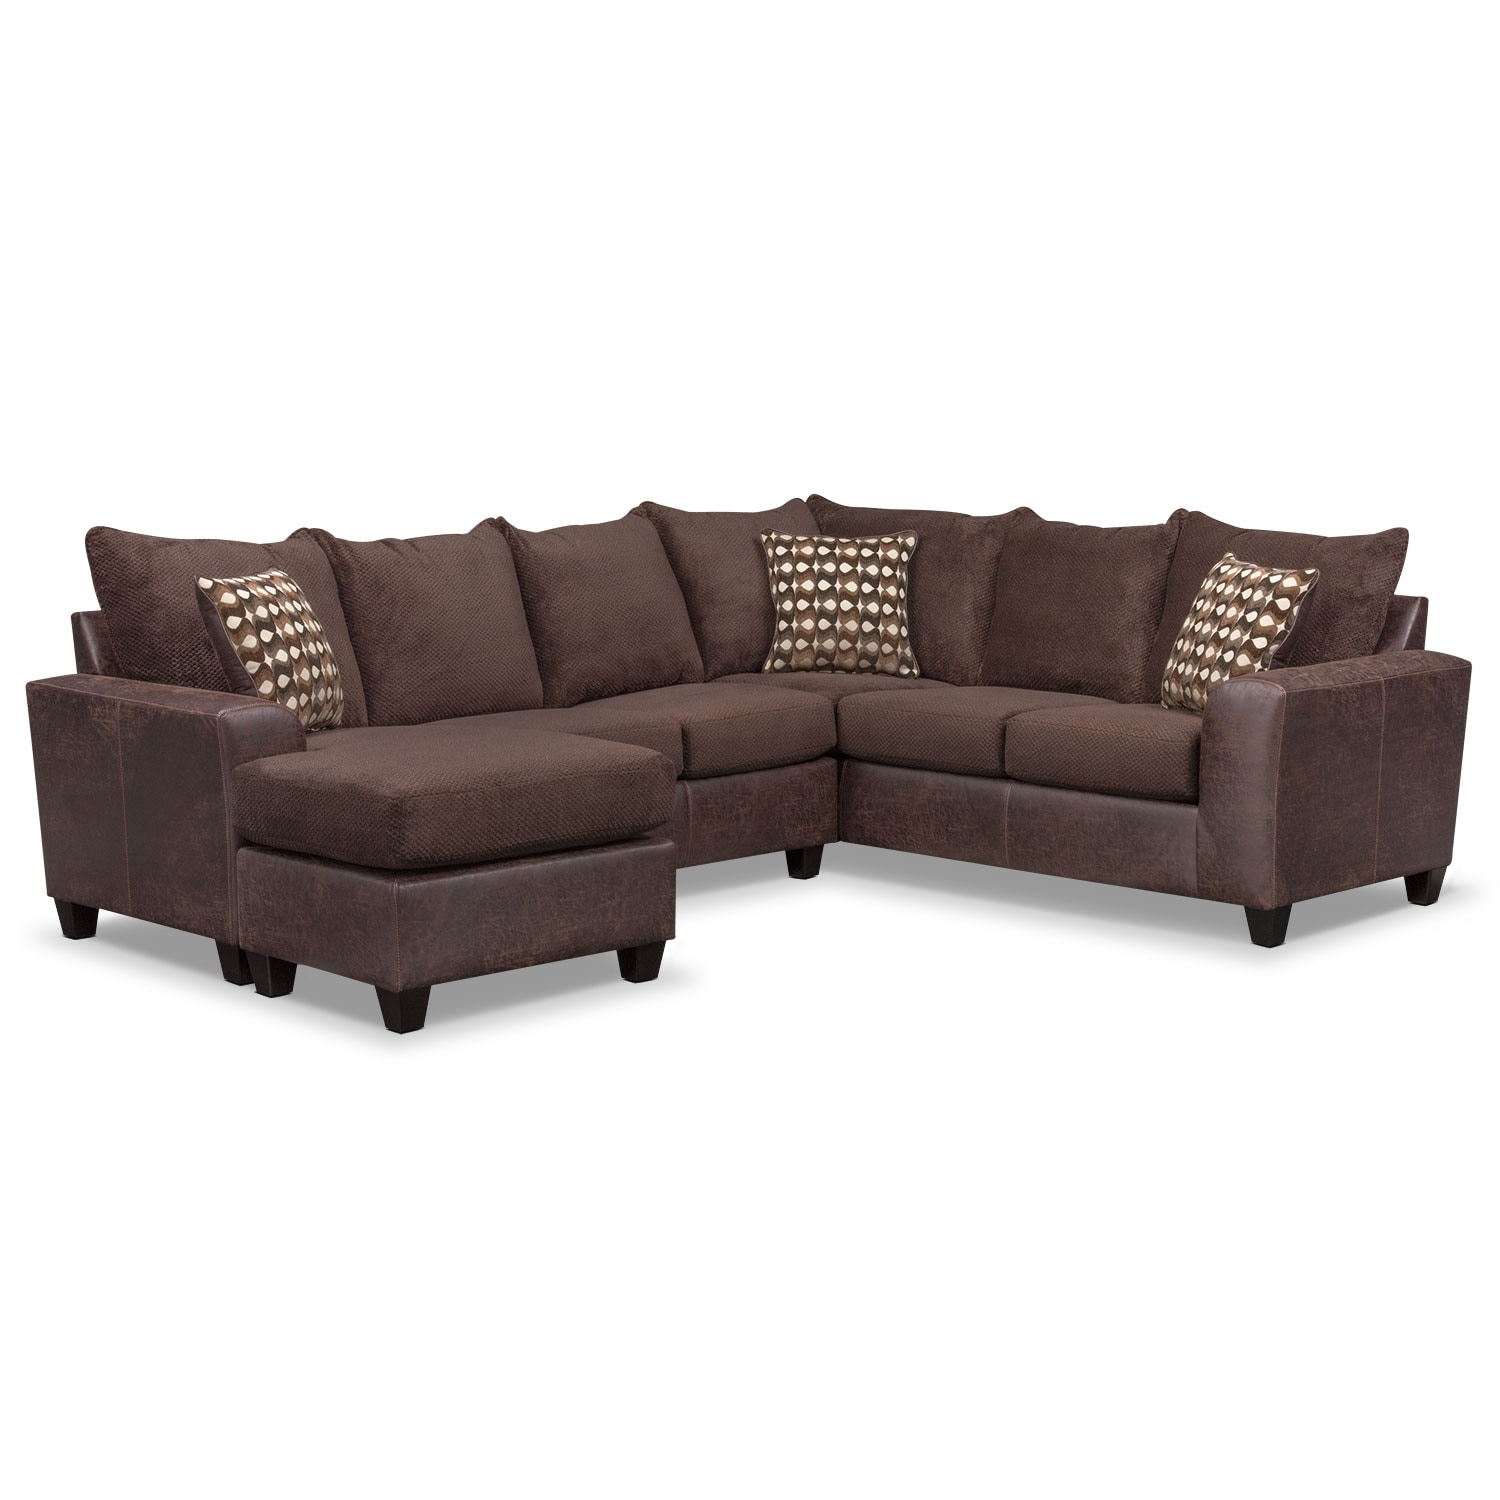 Brando 3 Piece Sectional with Modular Chaise Chocolate